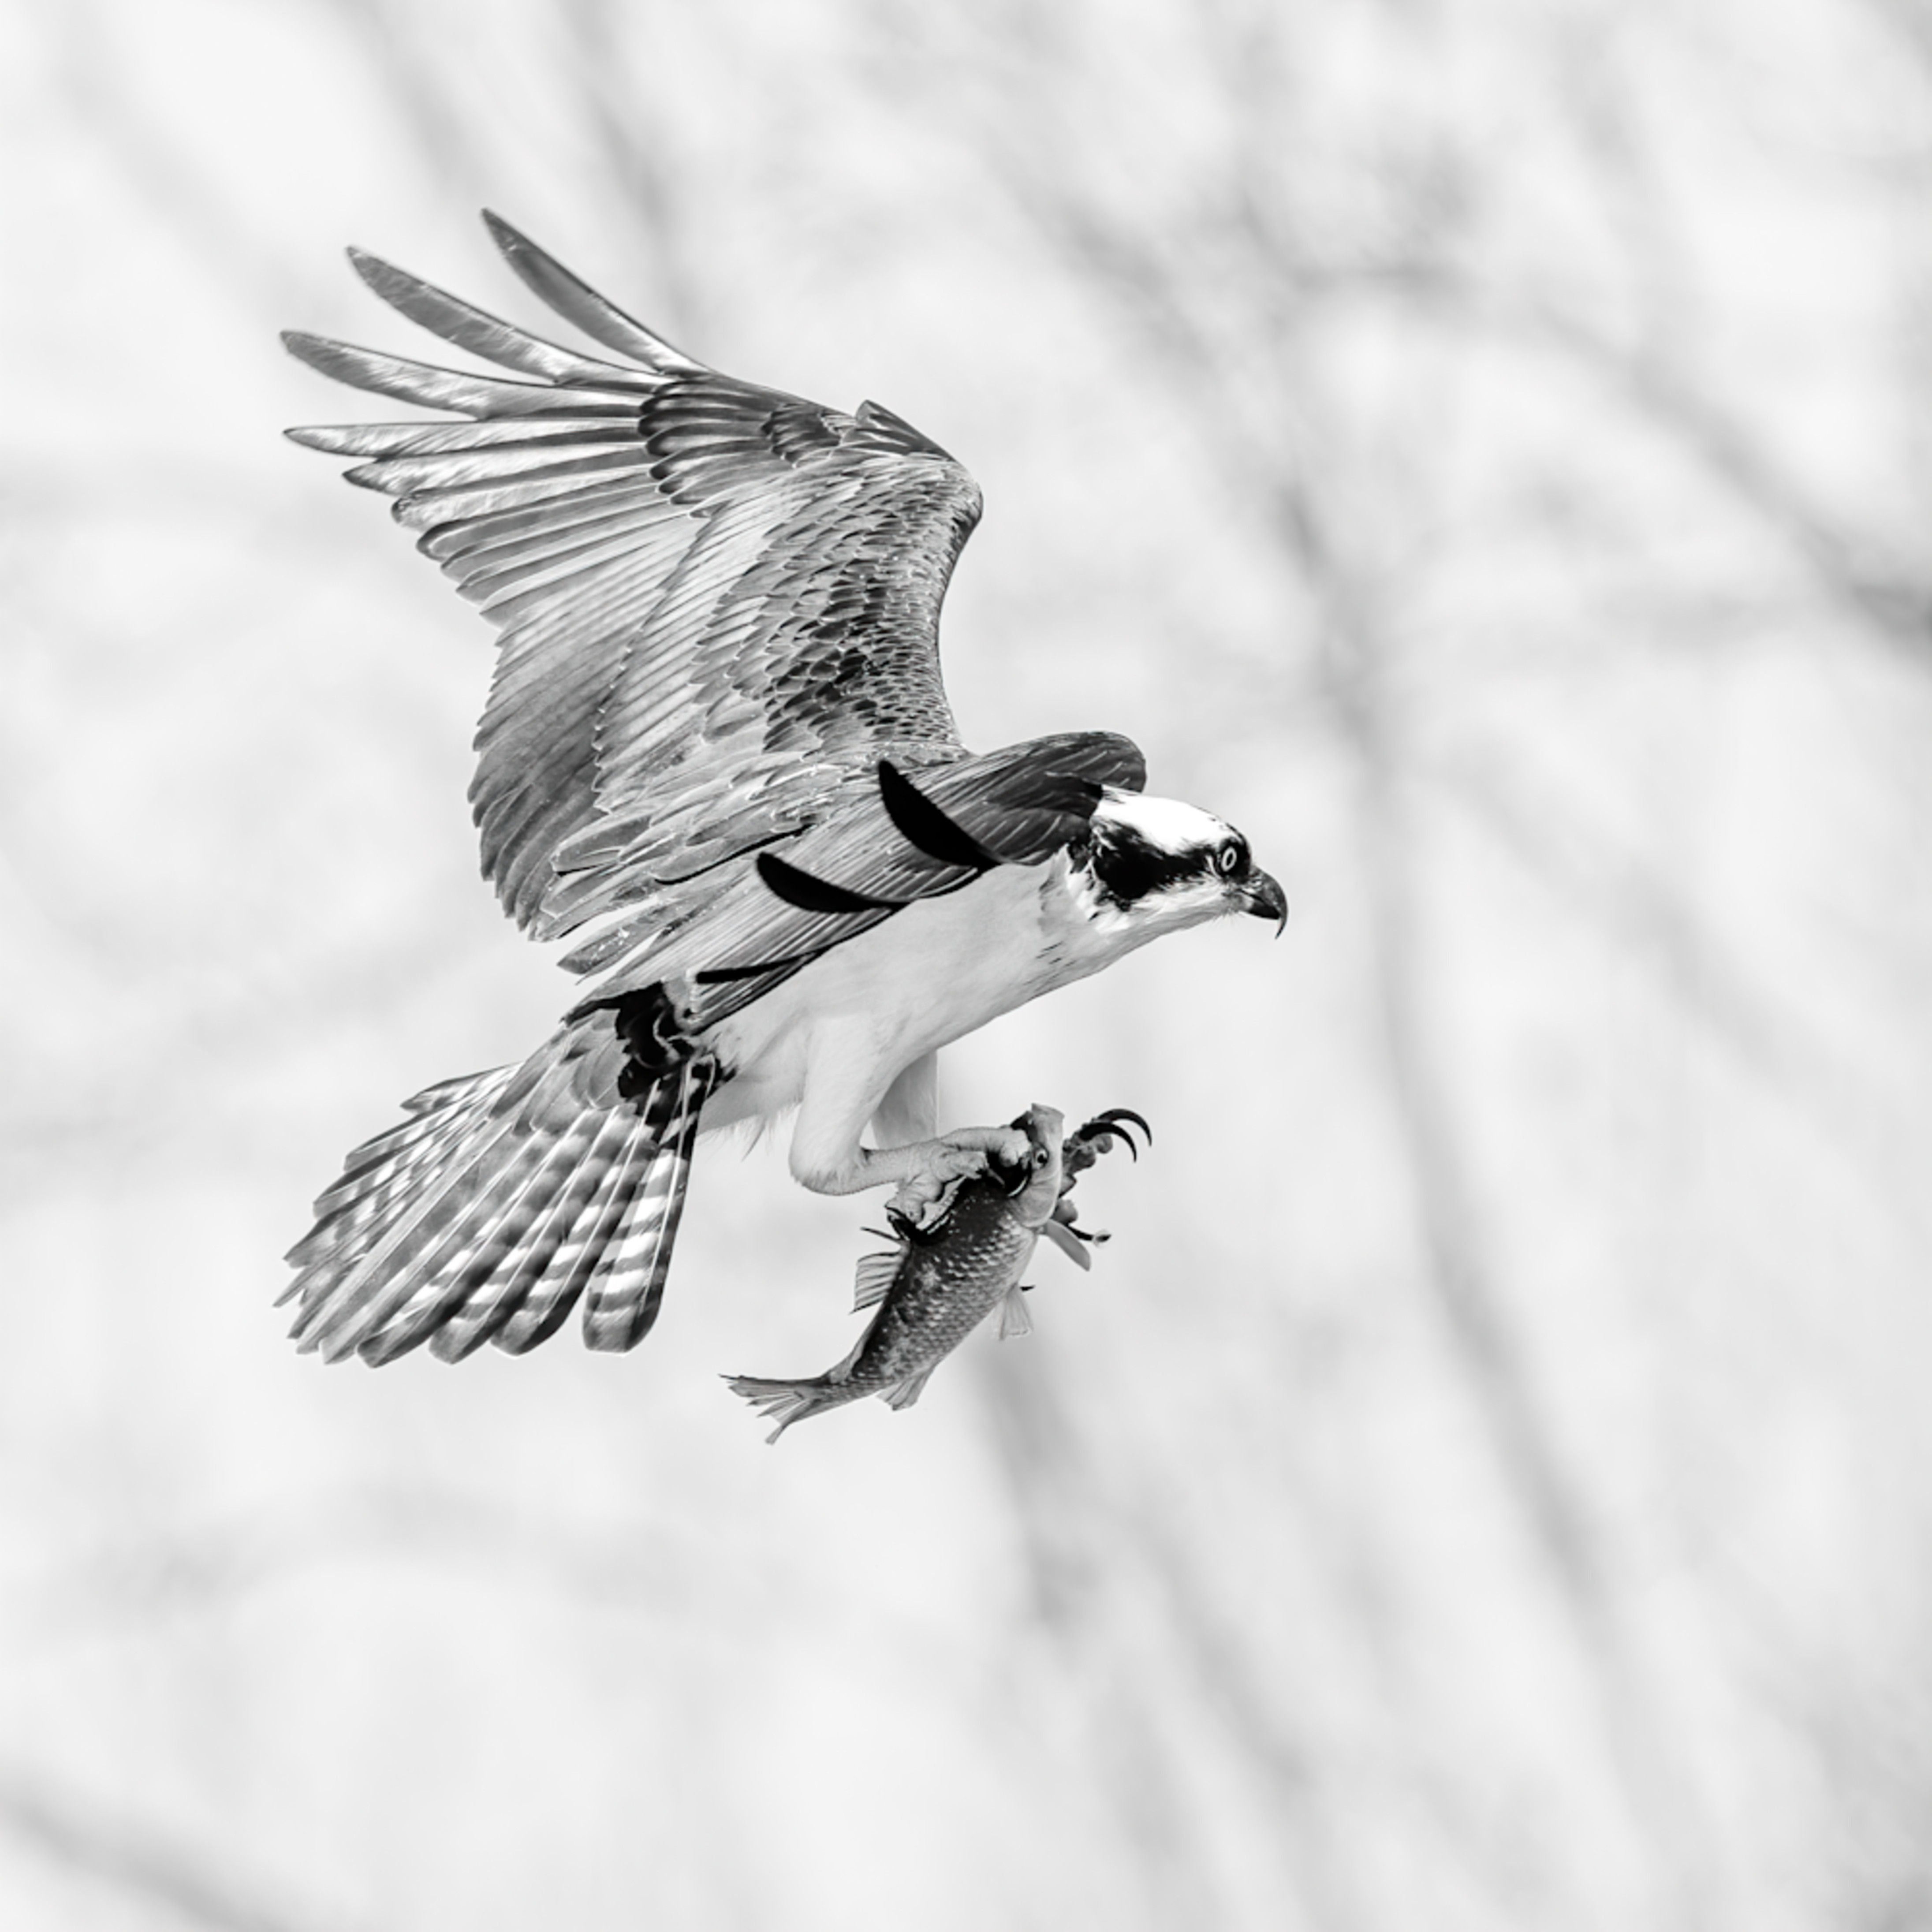 Osprey landing with fish in black and white 1 of 1 t1rn8f